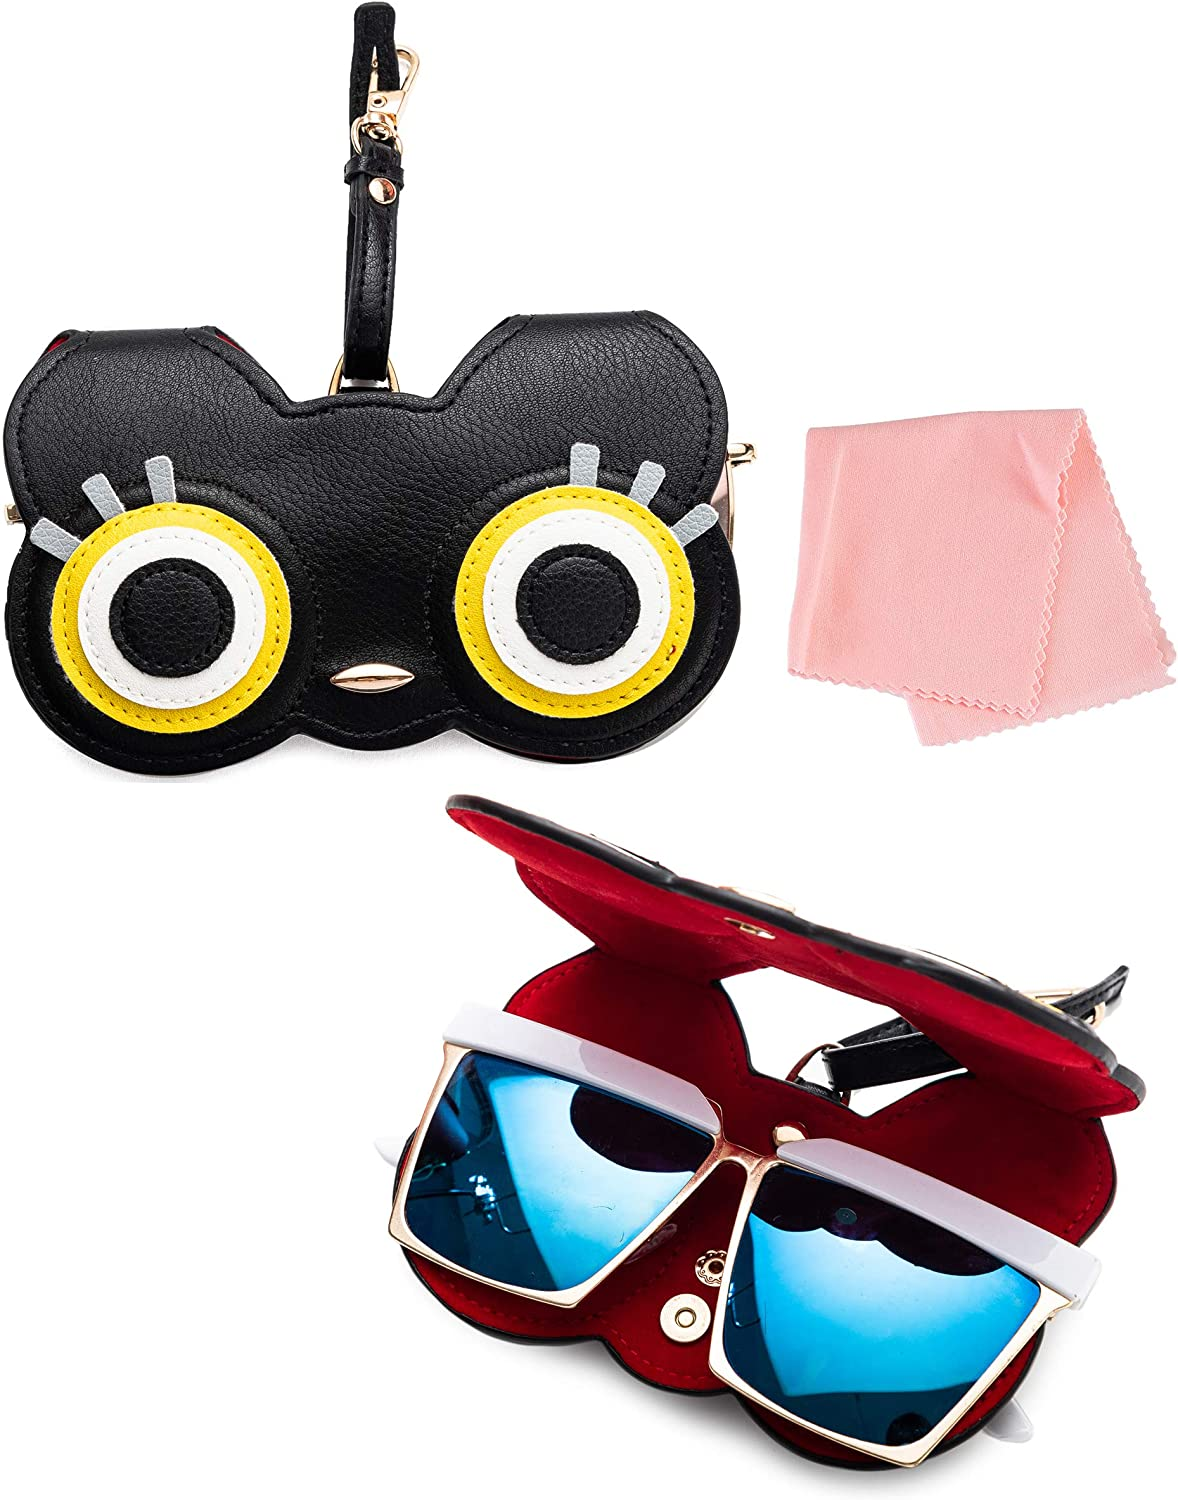 MoKo Cute Eyeglass Case Fashion Sunglasses Glasses Storage Case Bag for Women